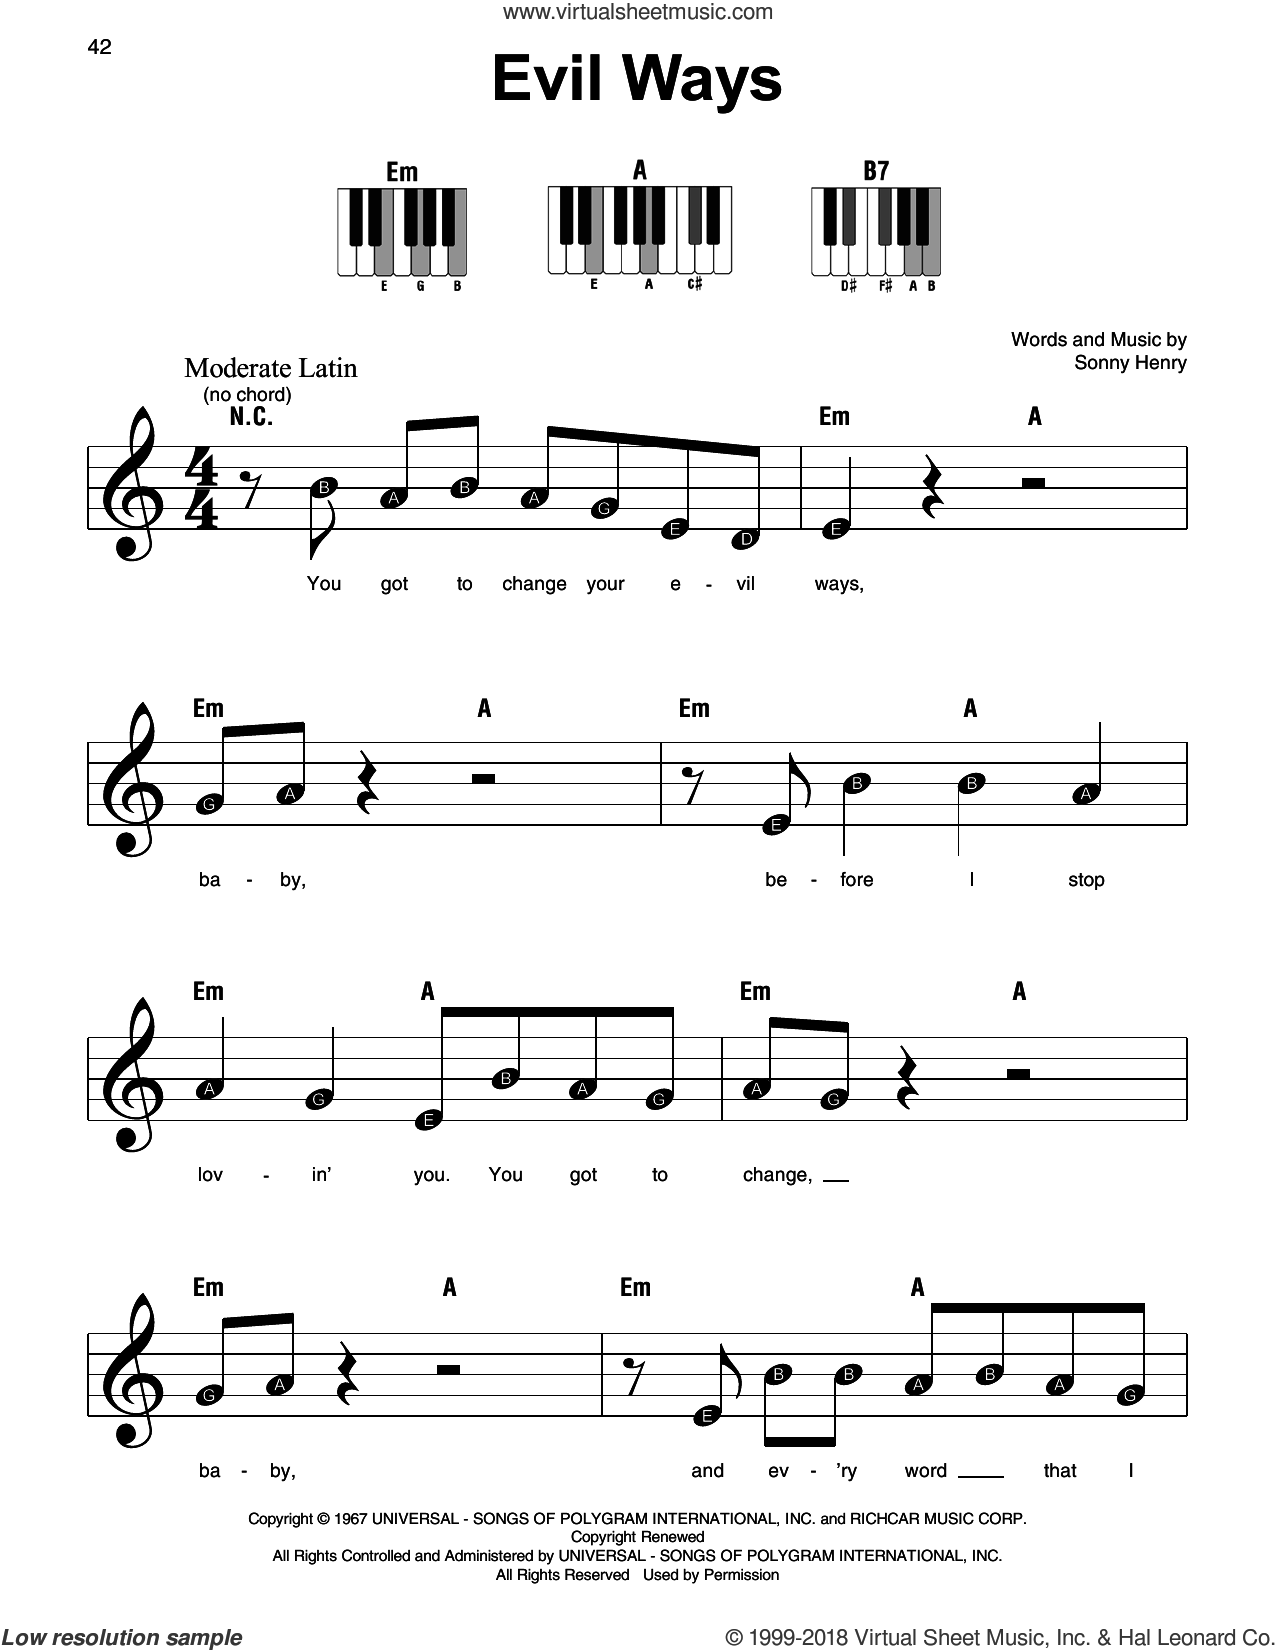 Evil Ways sheet music for piano solo by Carlos Santana and Sonny Henry, beginner skill level